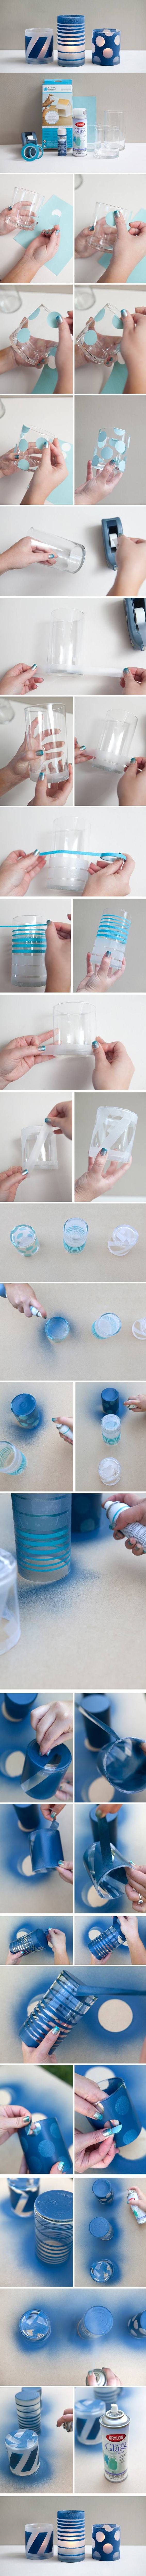 Glass painting is a lot of fun.  You can paint so many different things using glass paints.